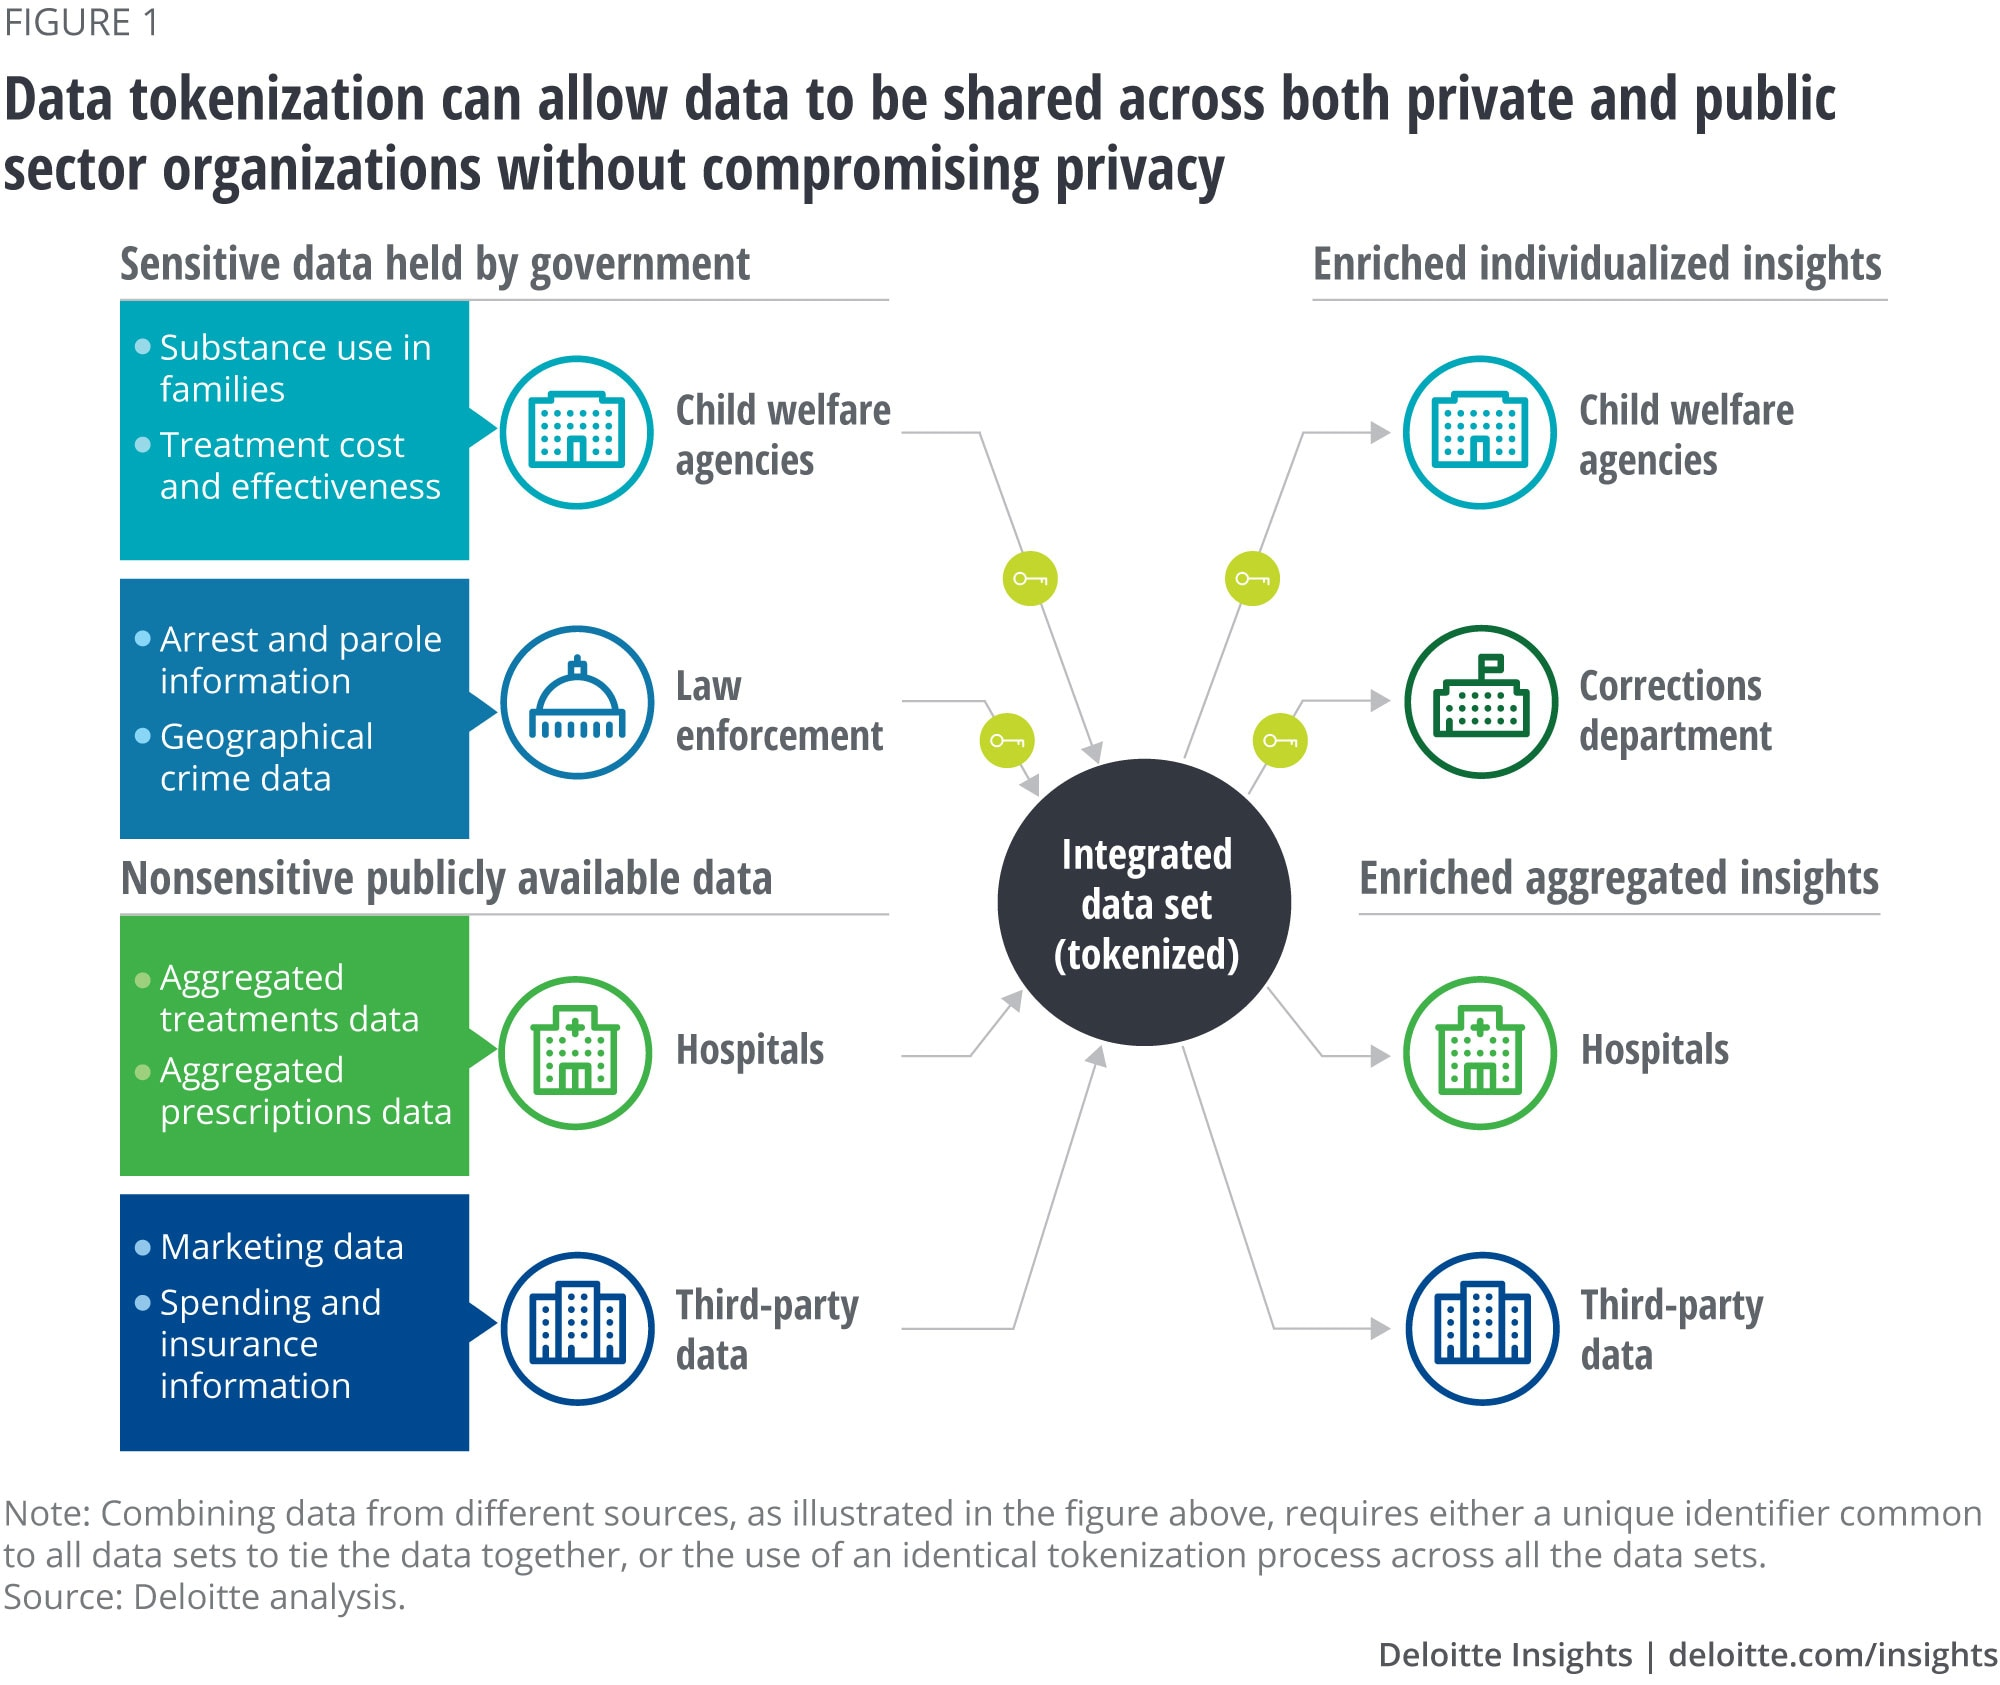 Data tokenization can allow data to be shared across both private and public sector organizations without compromising privacy